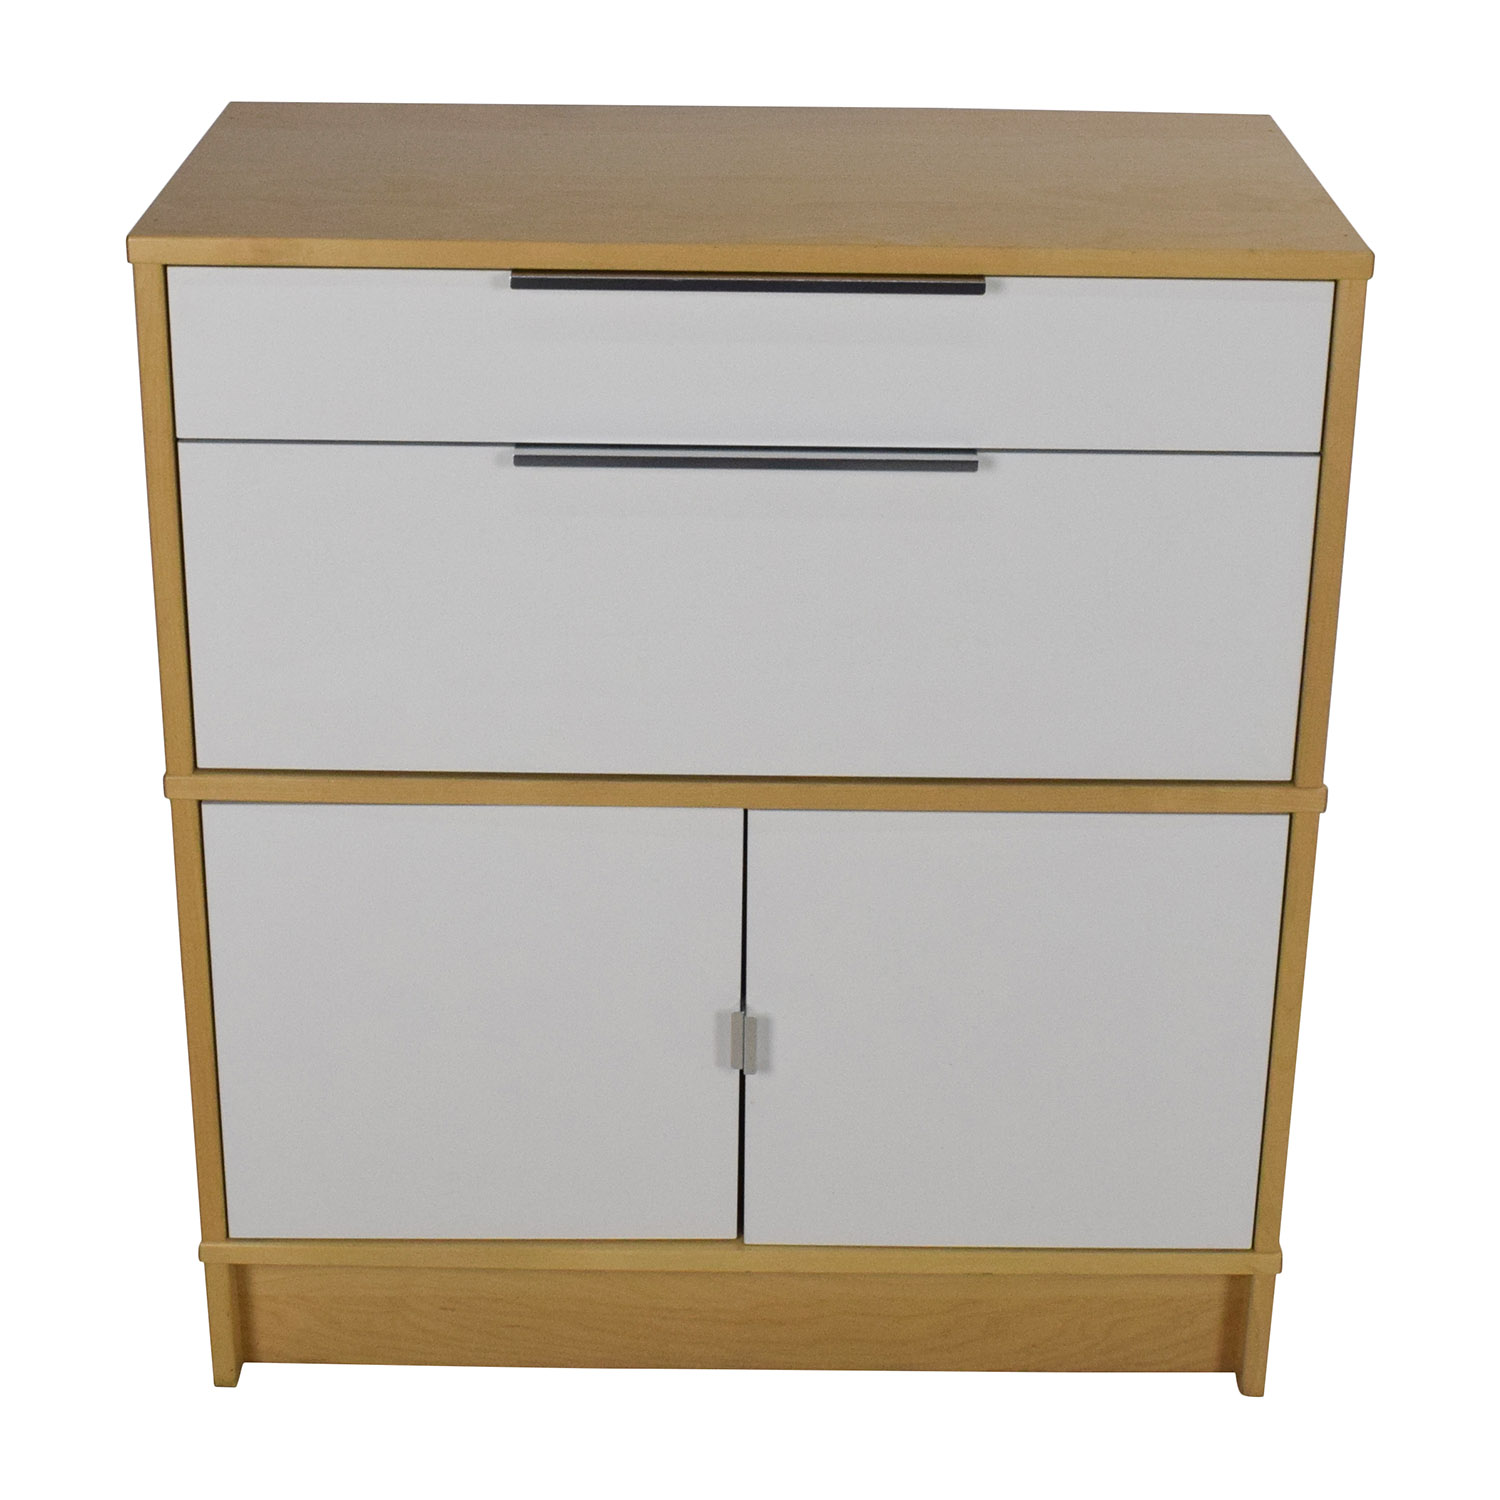 IKEA IKEA Storage Unit White/Light Brown